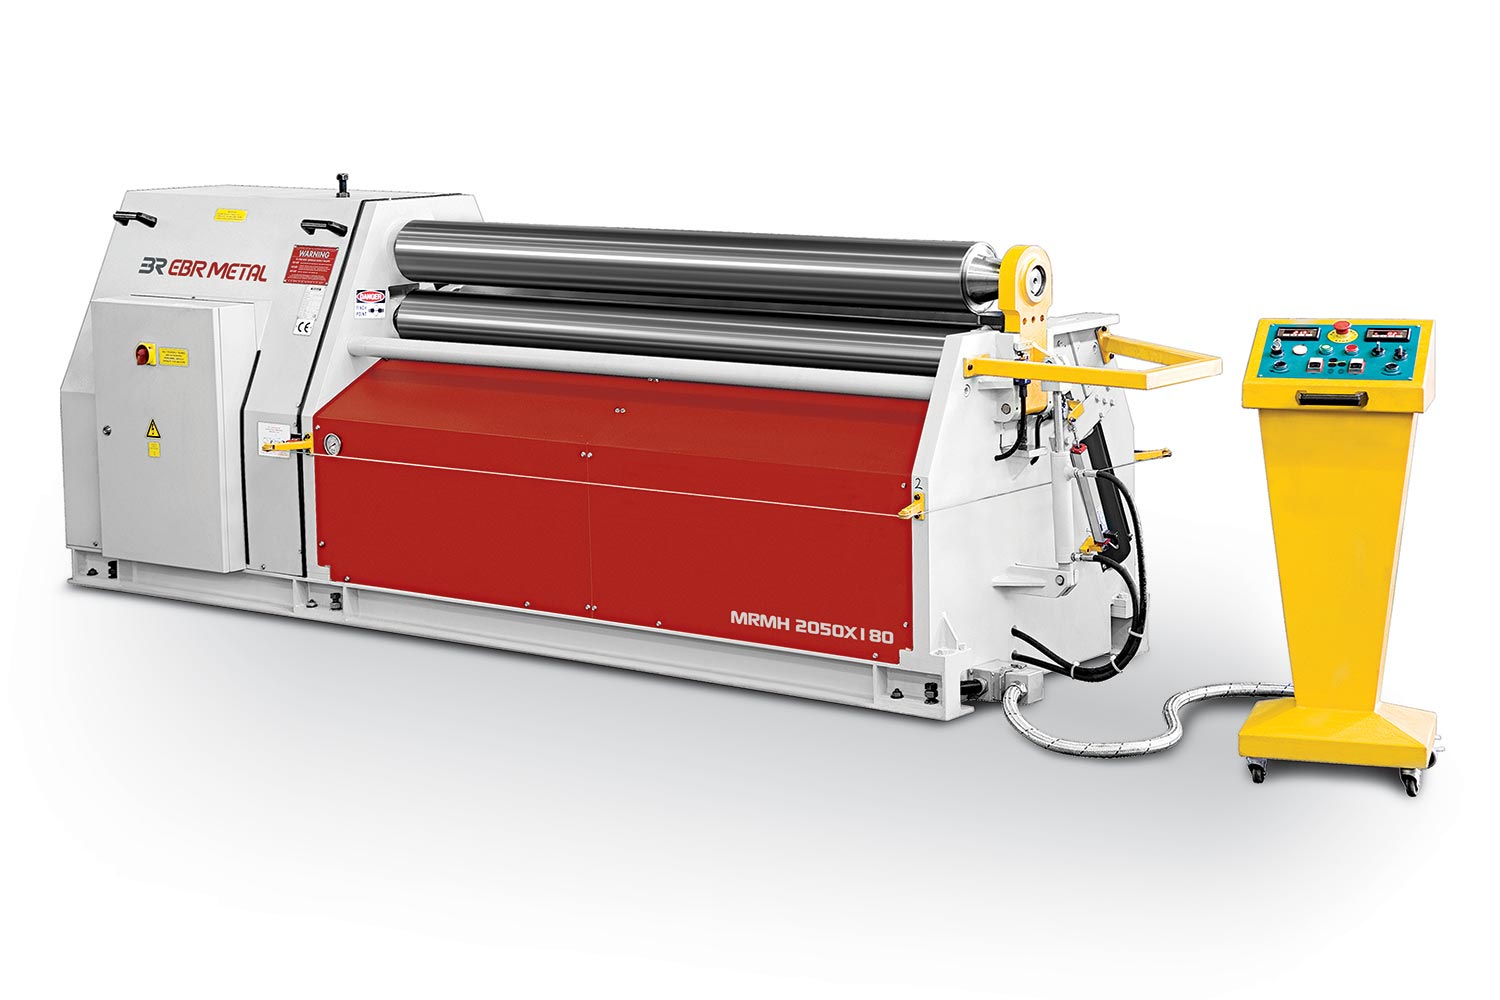 3 Rolls Hydraulic Plate Bending Machines Overview